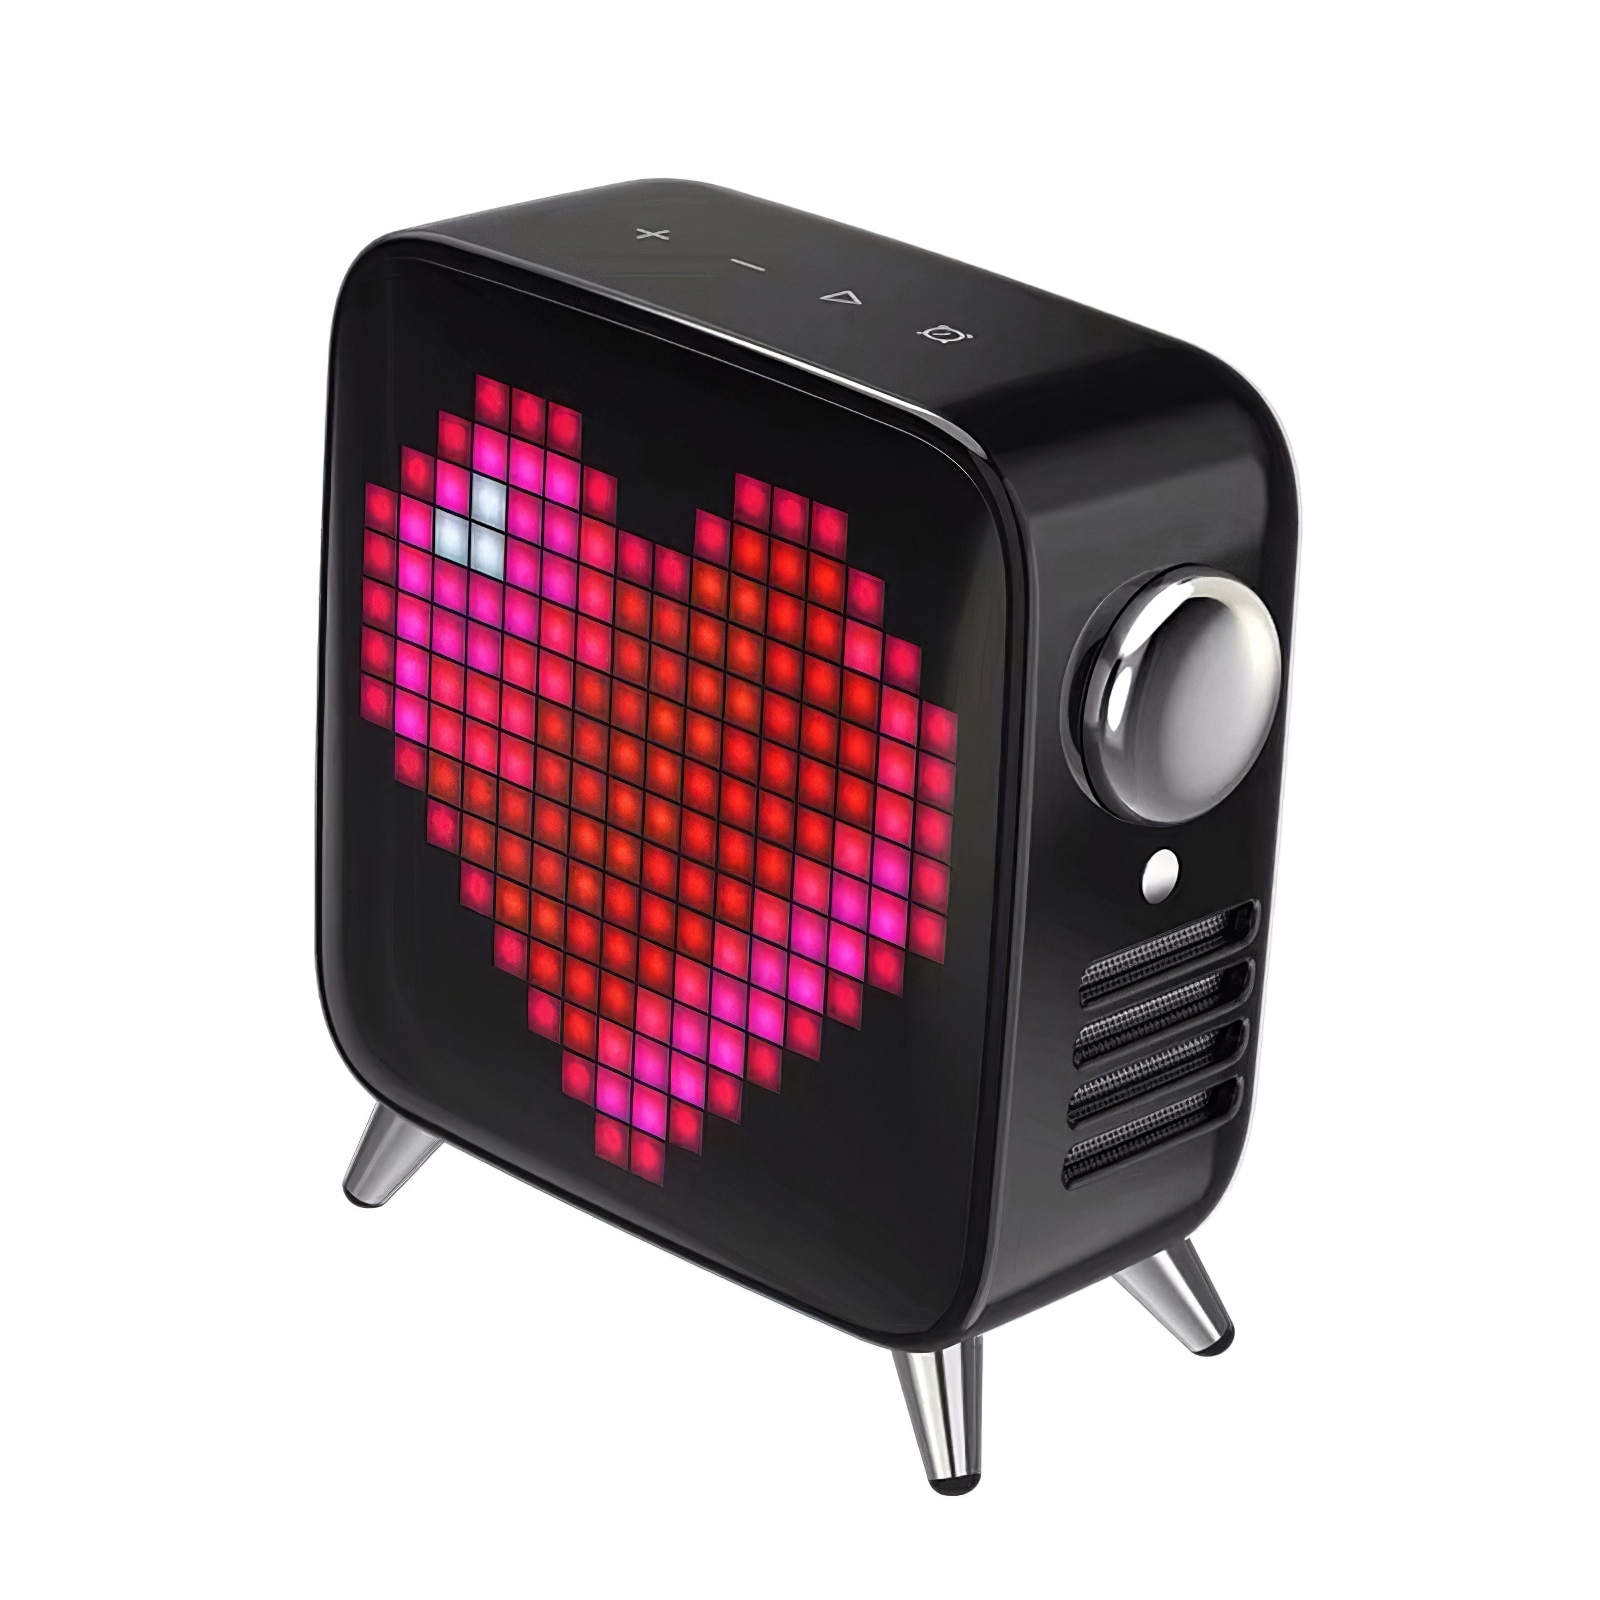 Portable Bluetooth Pixel Art Bluetooth Wireless Speaker with 2.1 Audio 40W Output Heavy Bass Speaker With Programmable LED Panel